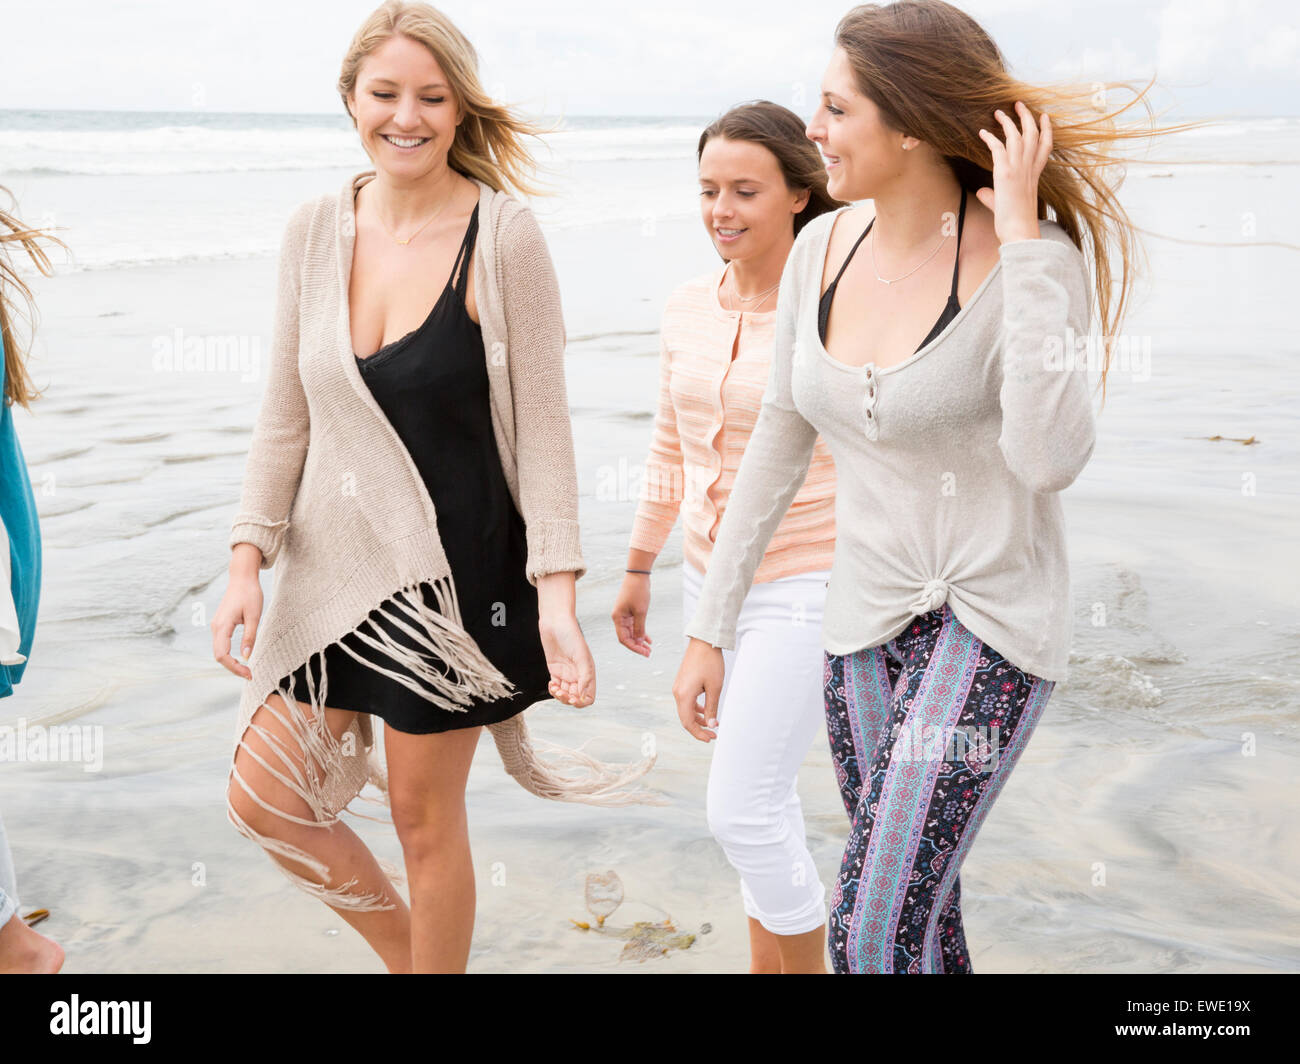 Three smiling young women walking on a beach - Stock Image